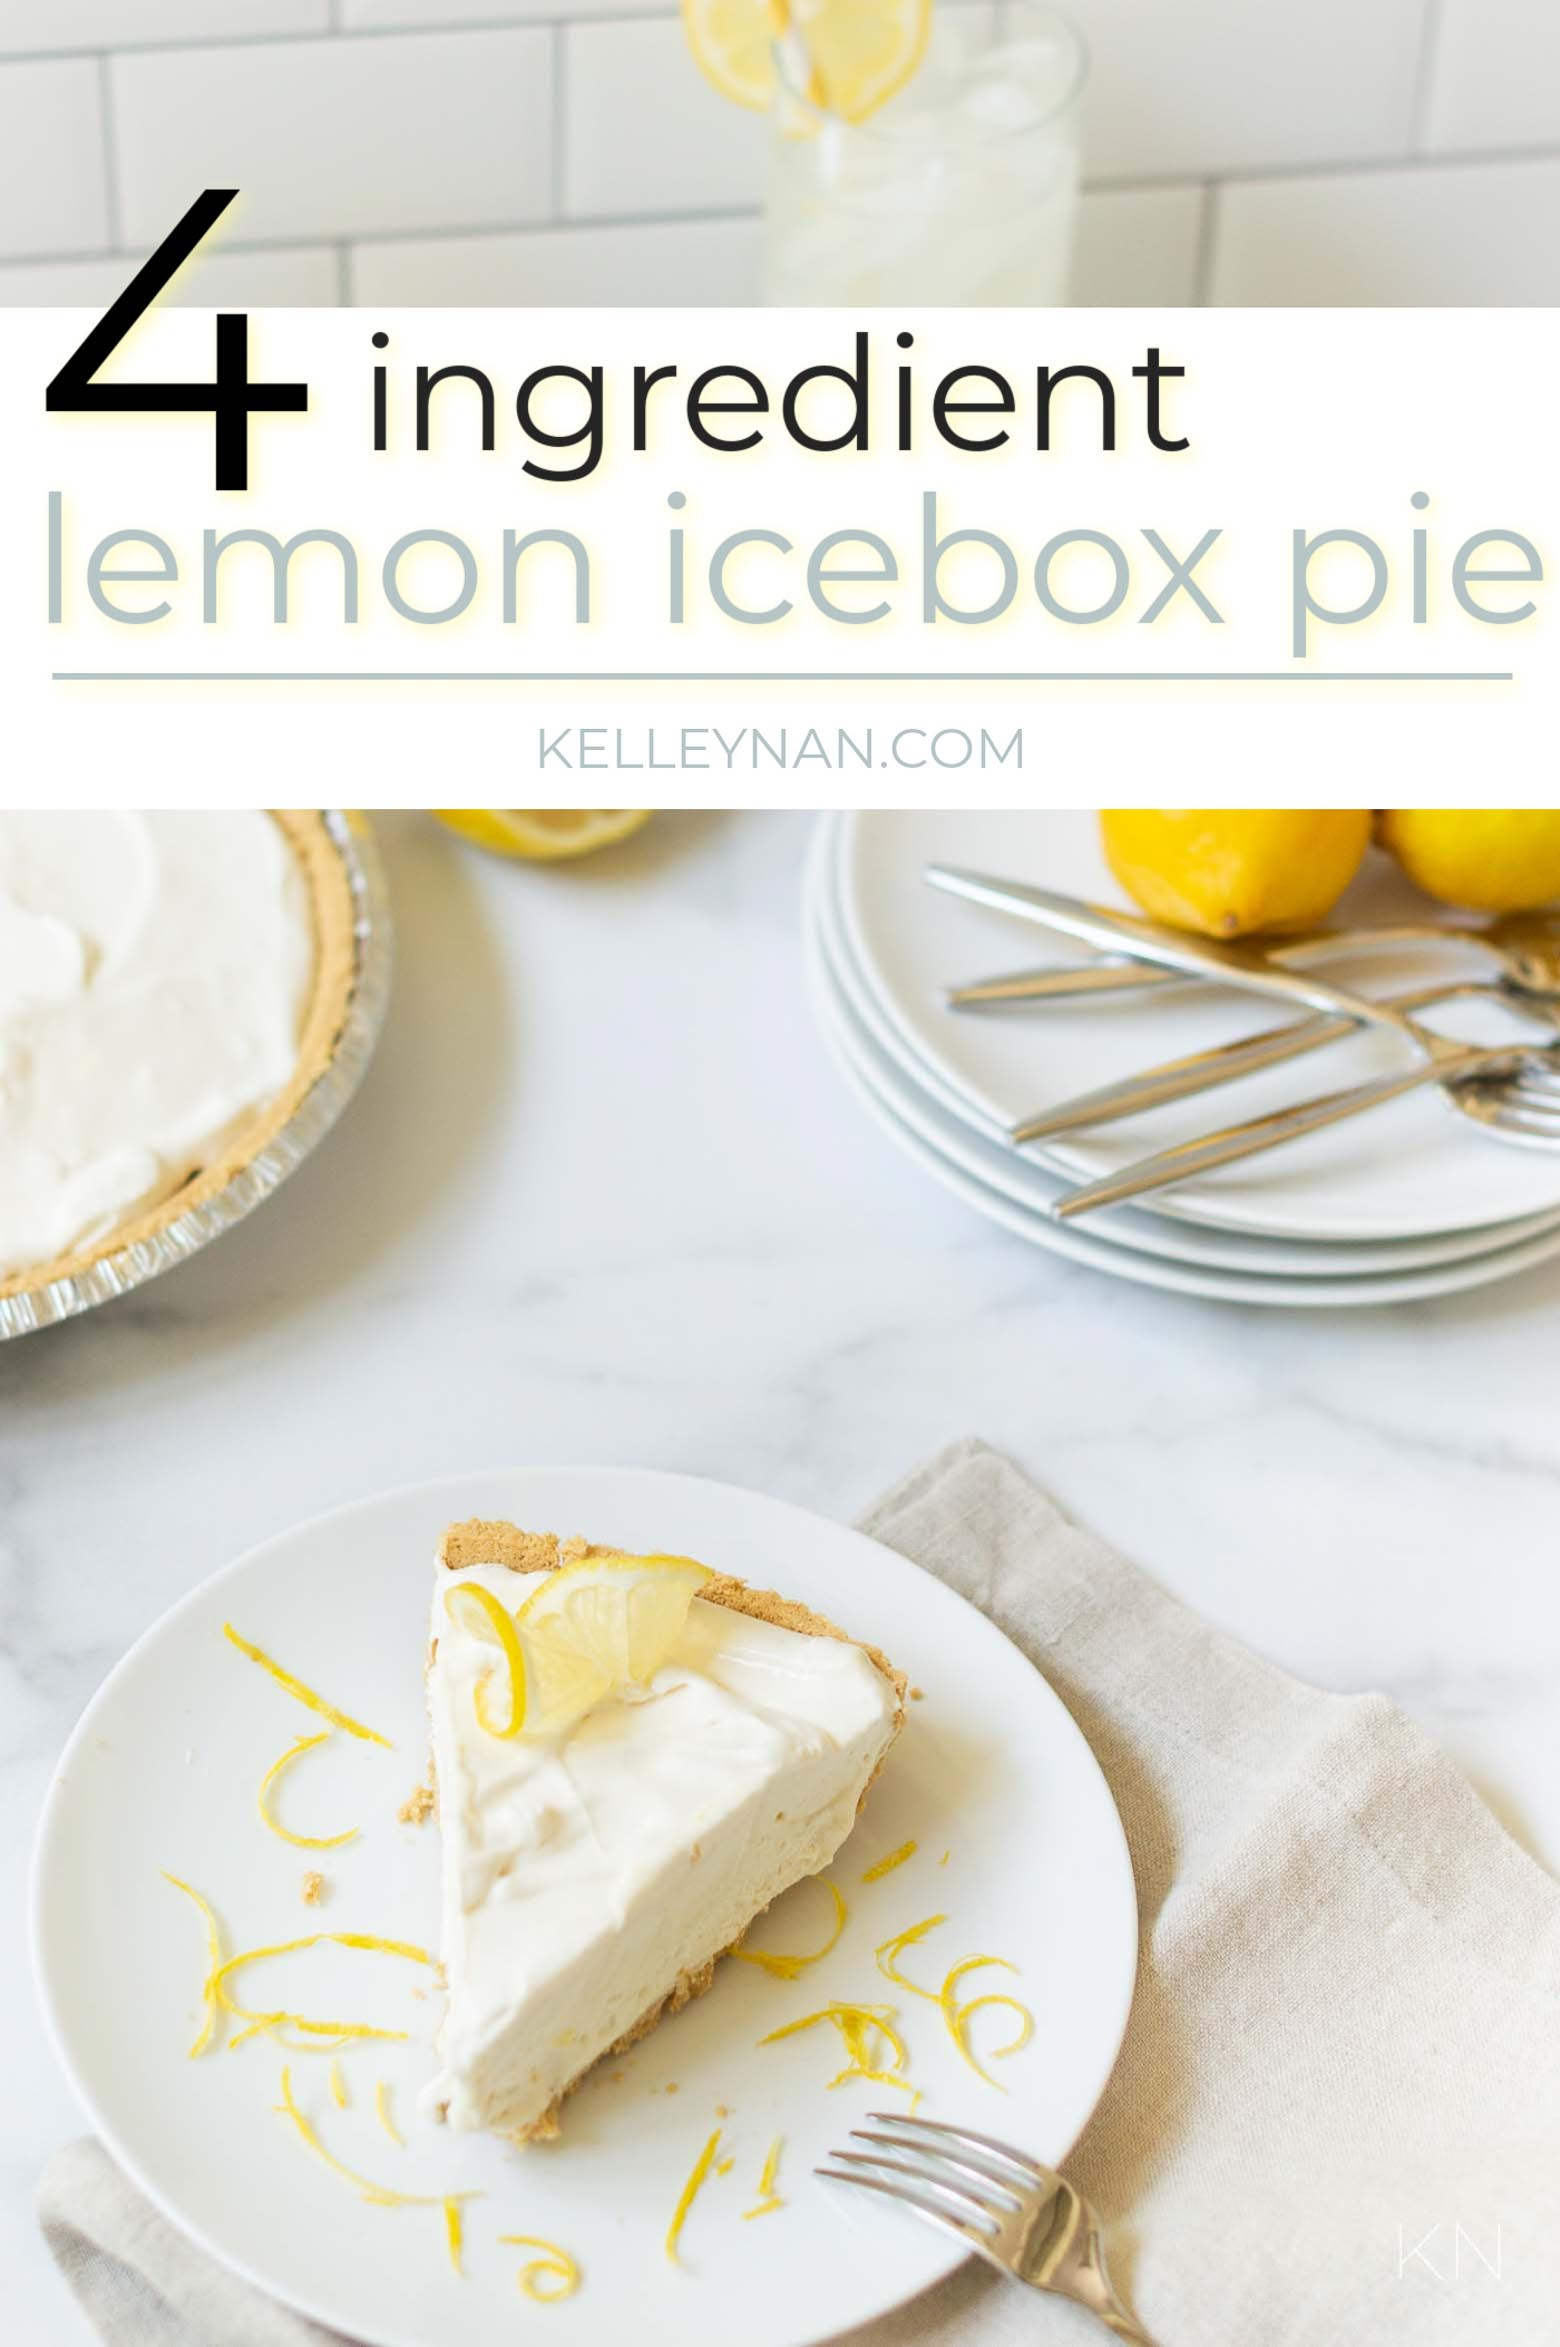 Simple (No Bake) Lemon Icebox Pie with Only Four Ingredients!